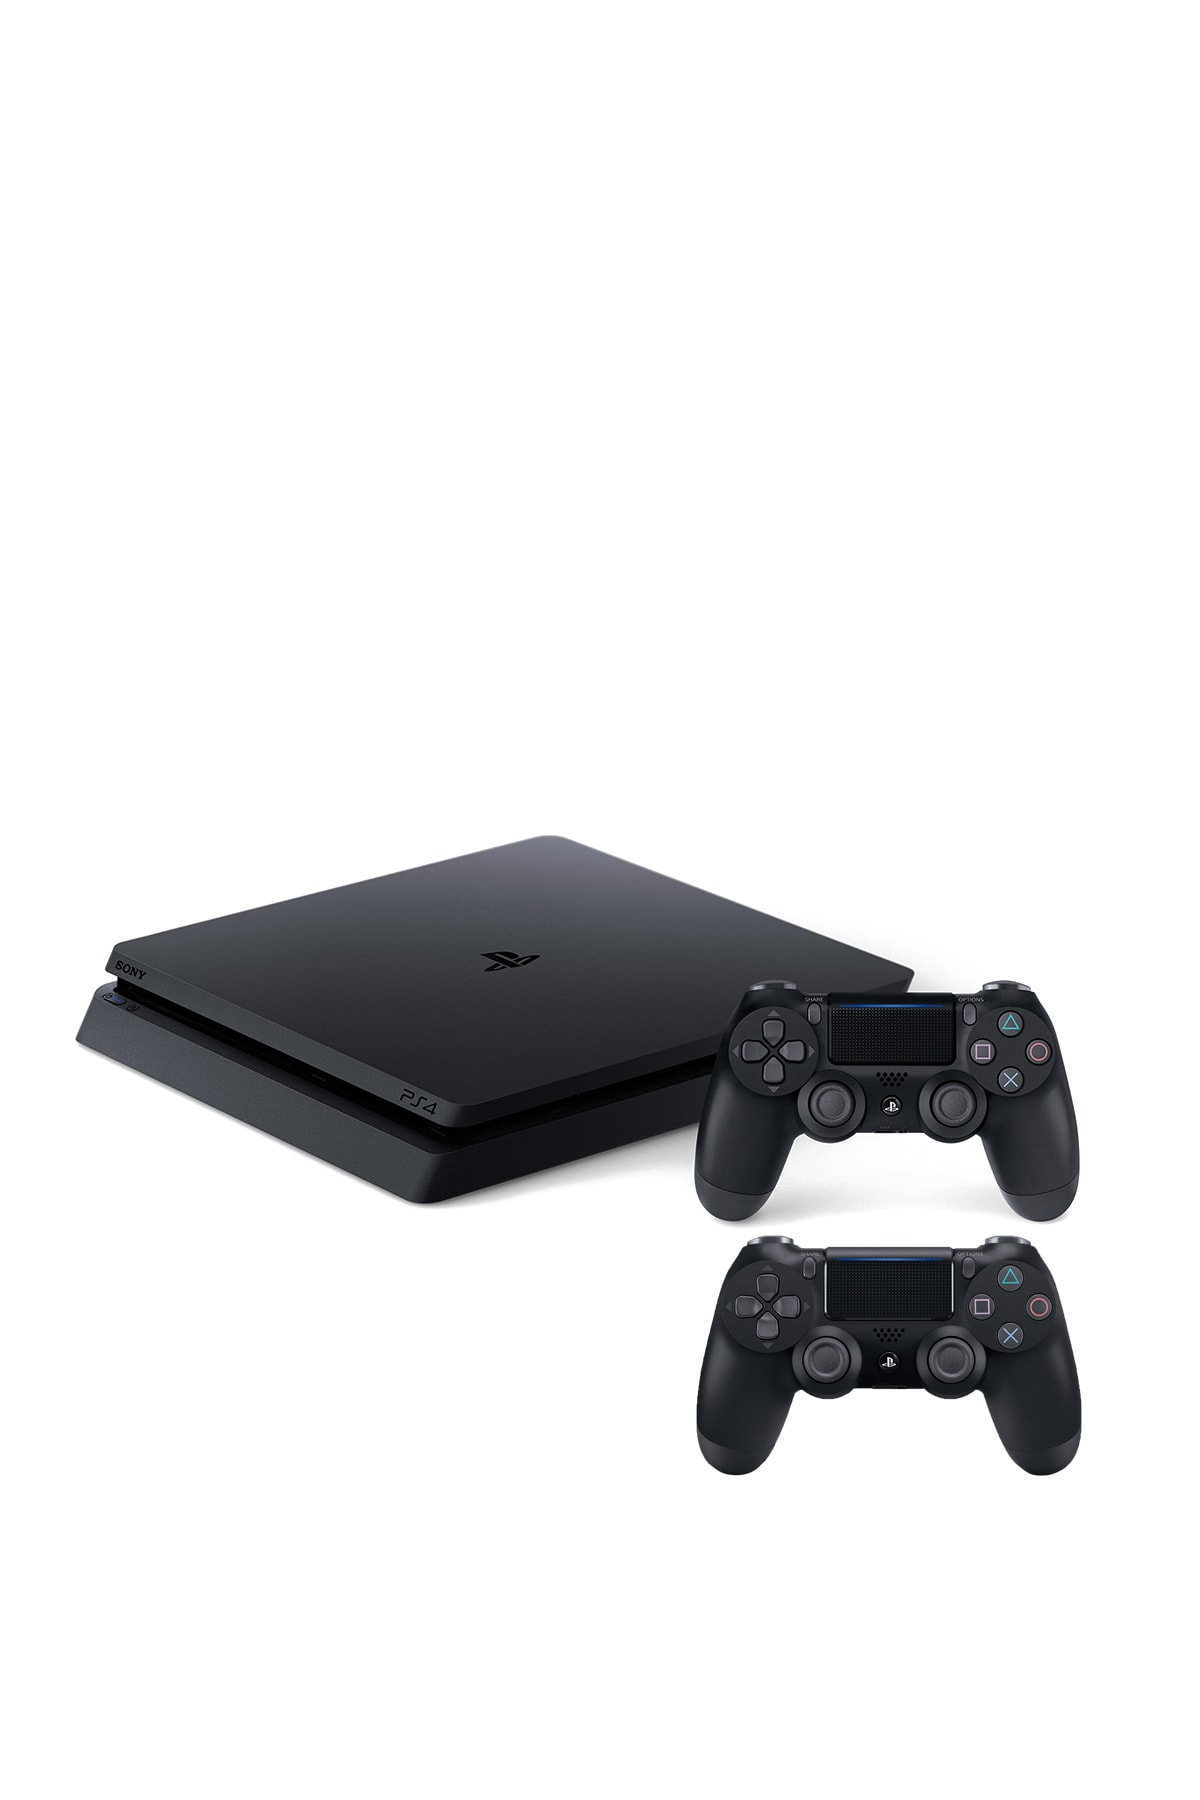 Sony Playstation 4 Slim 500 GB + 2. PS4 Kol + PS4 Pes 2020 + PS4 Uncharted 4 2